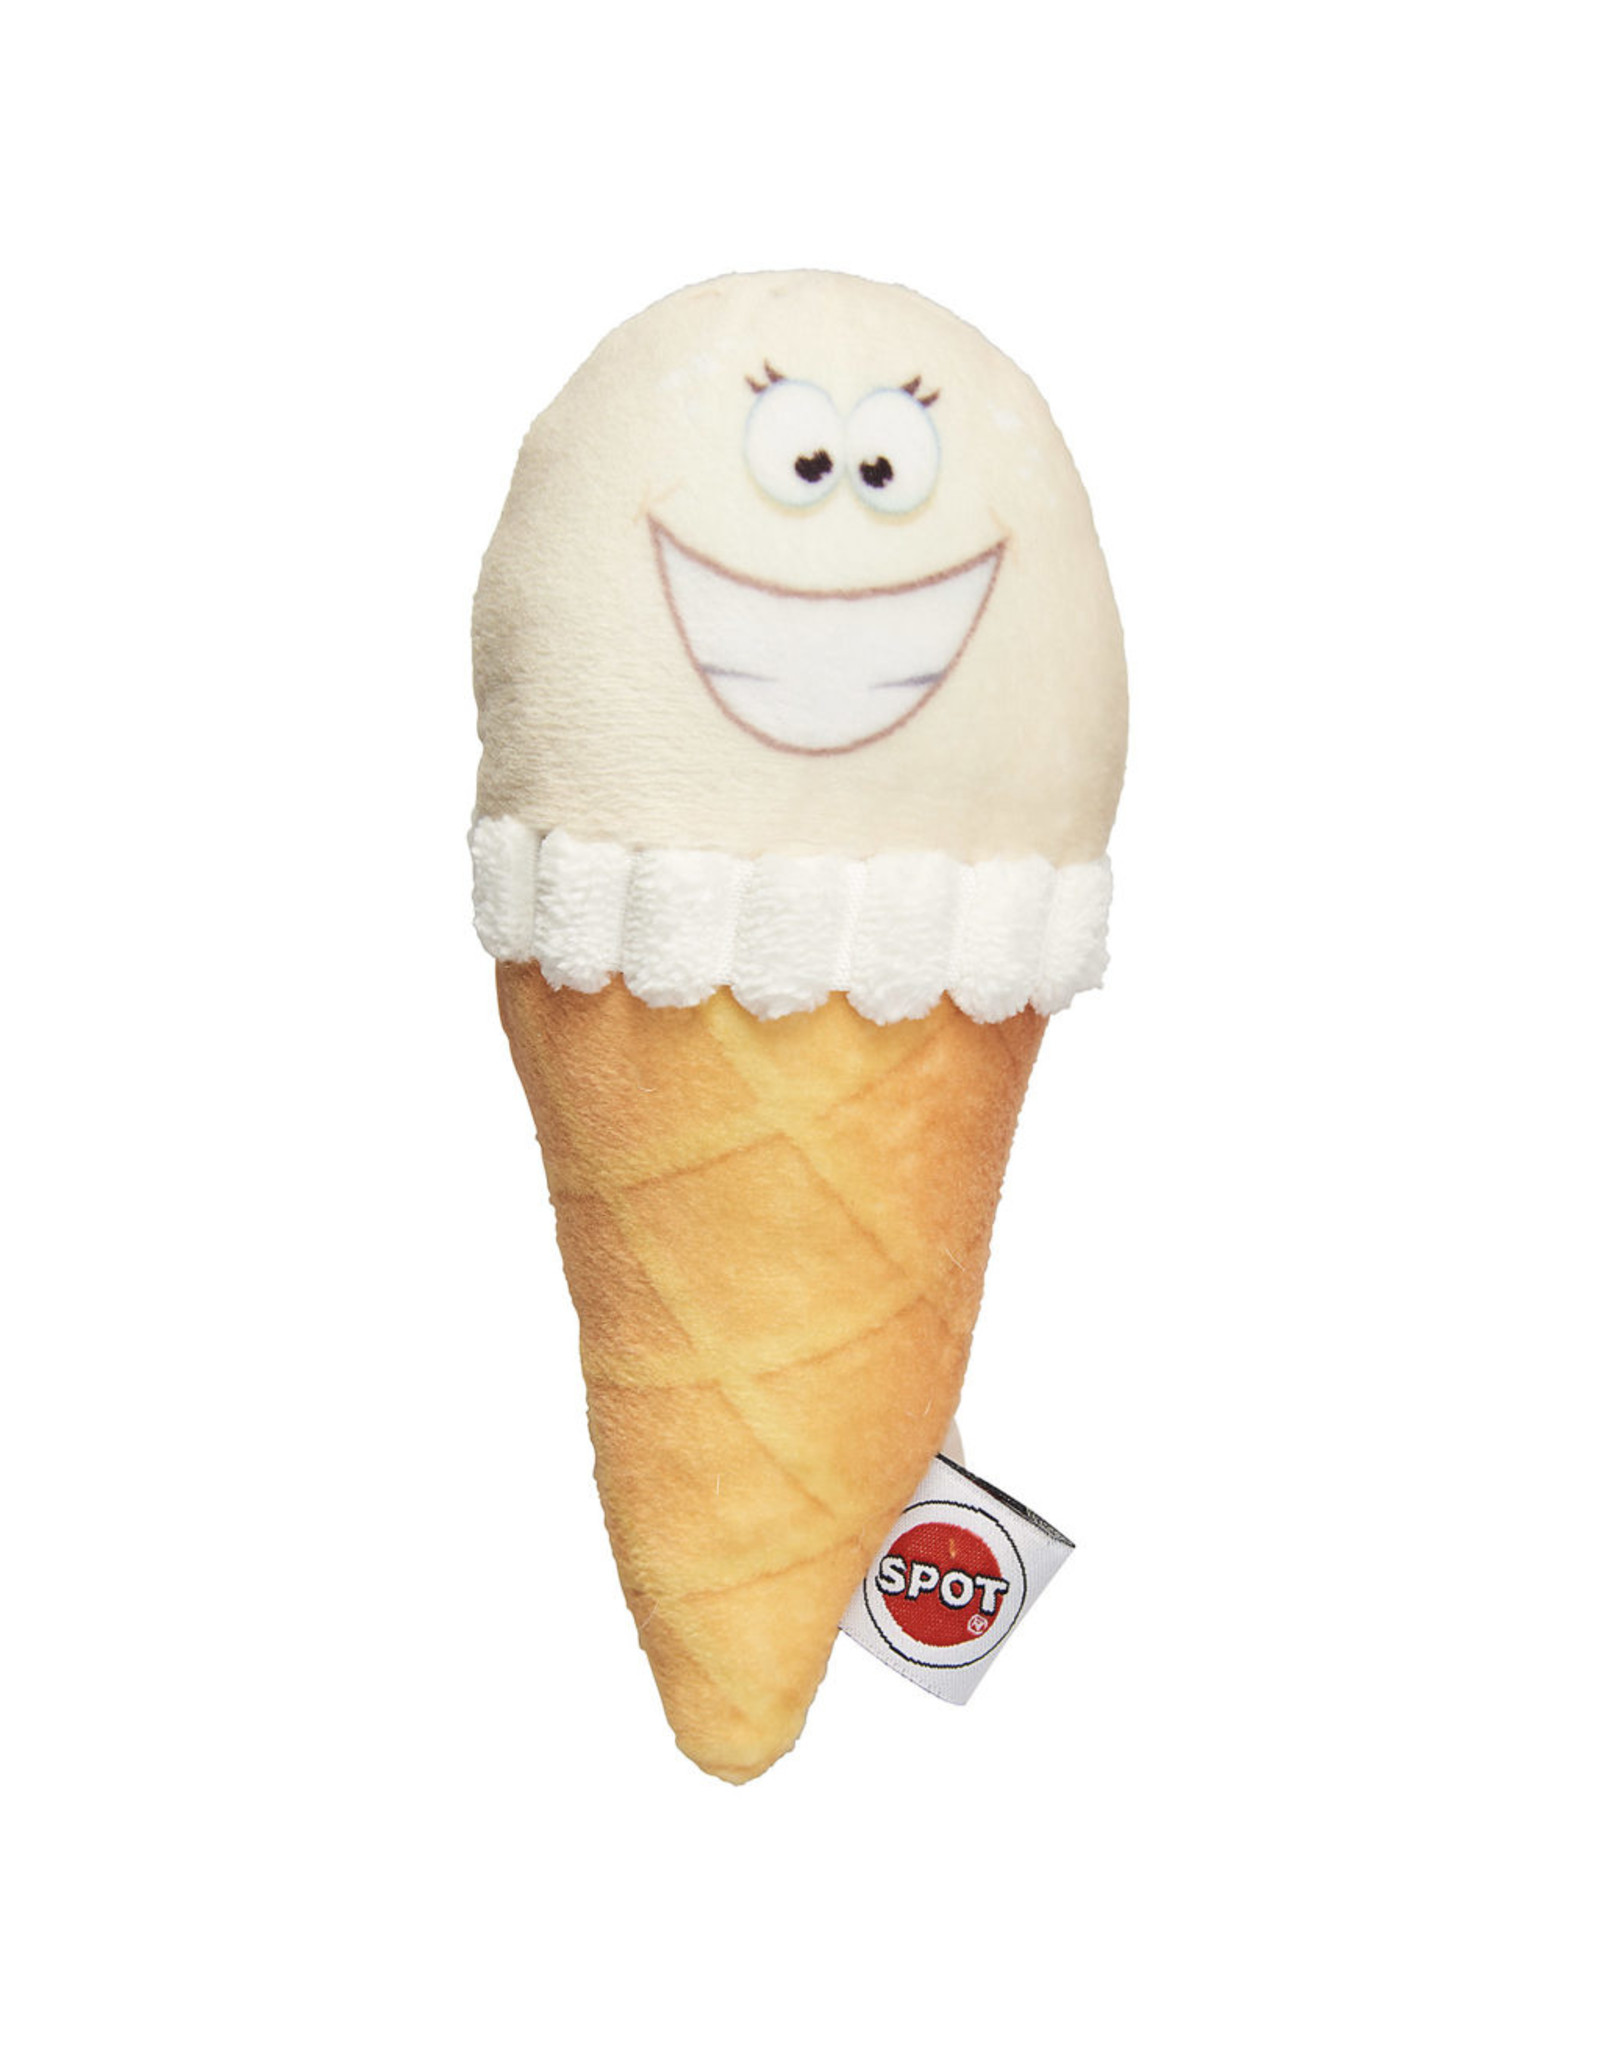 Spot (Ethical) Fun Food - Ice Cream Cone 6""